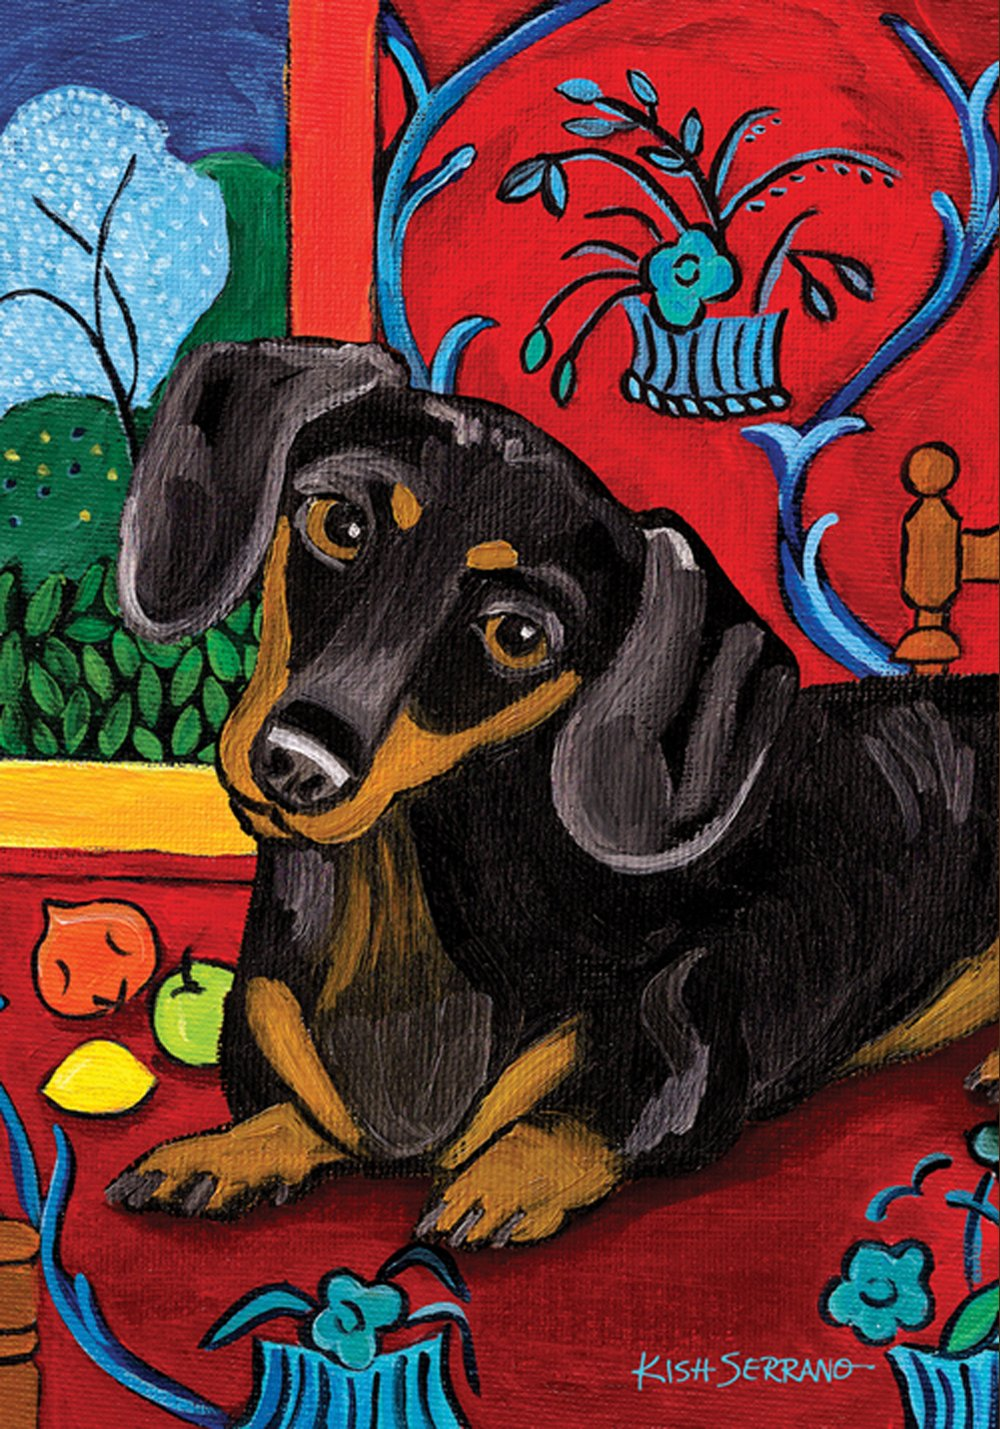 Amazon.com : Toland Home Garden Muttisse Dachshund 12.5 X 18 Inch  Decorative USA Produced Garden Flag : Outdoor Decorative Flags : Patio,  Lawn U0026 Garden